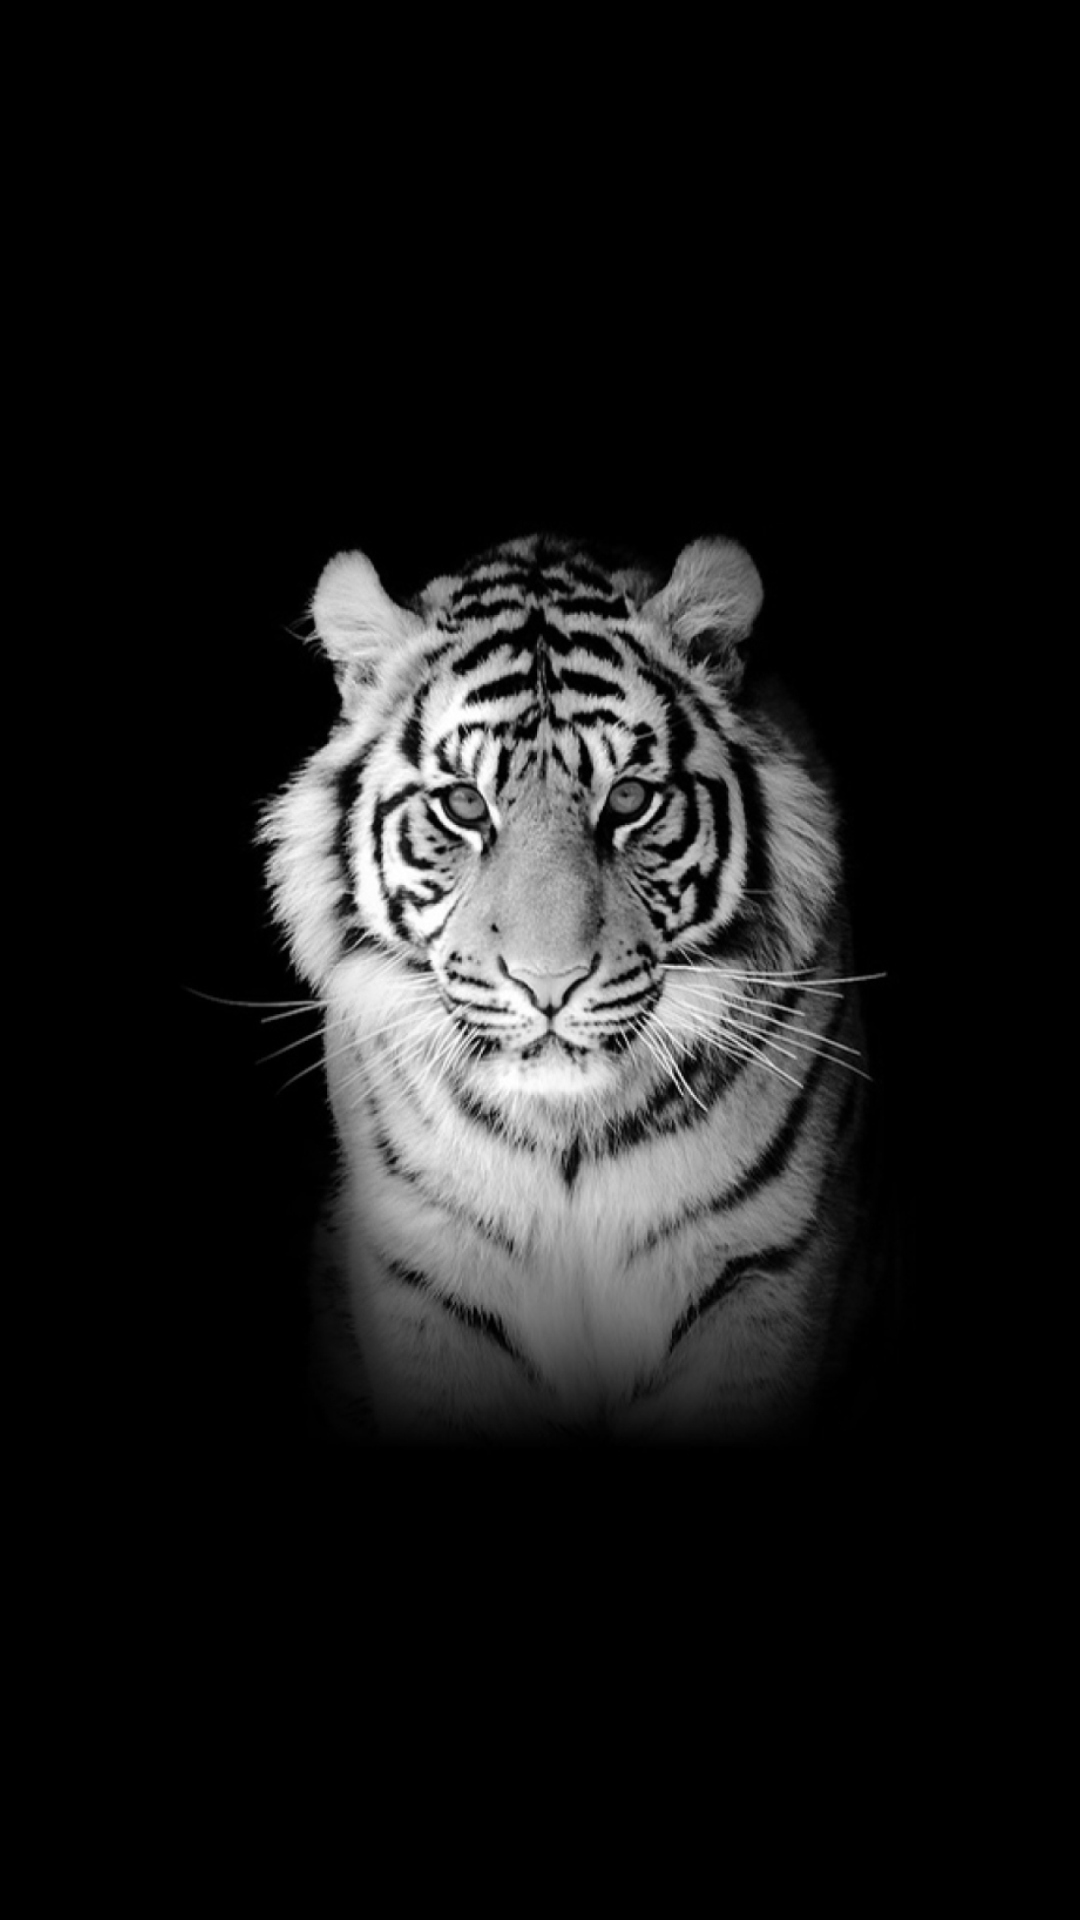 Tiger Wallpaper for 1080x1920